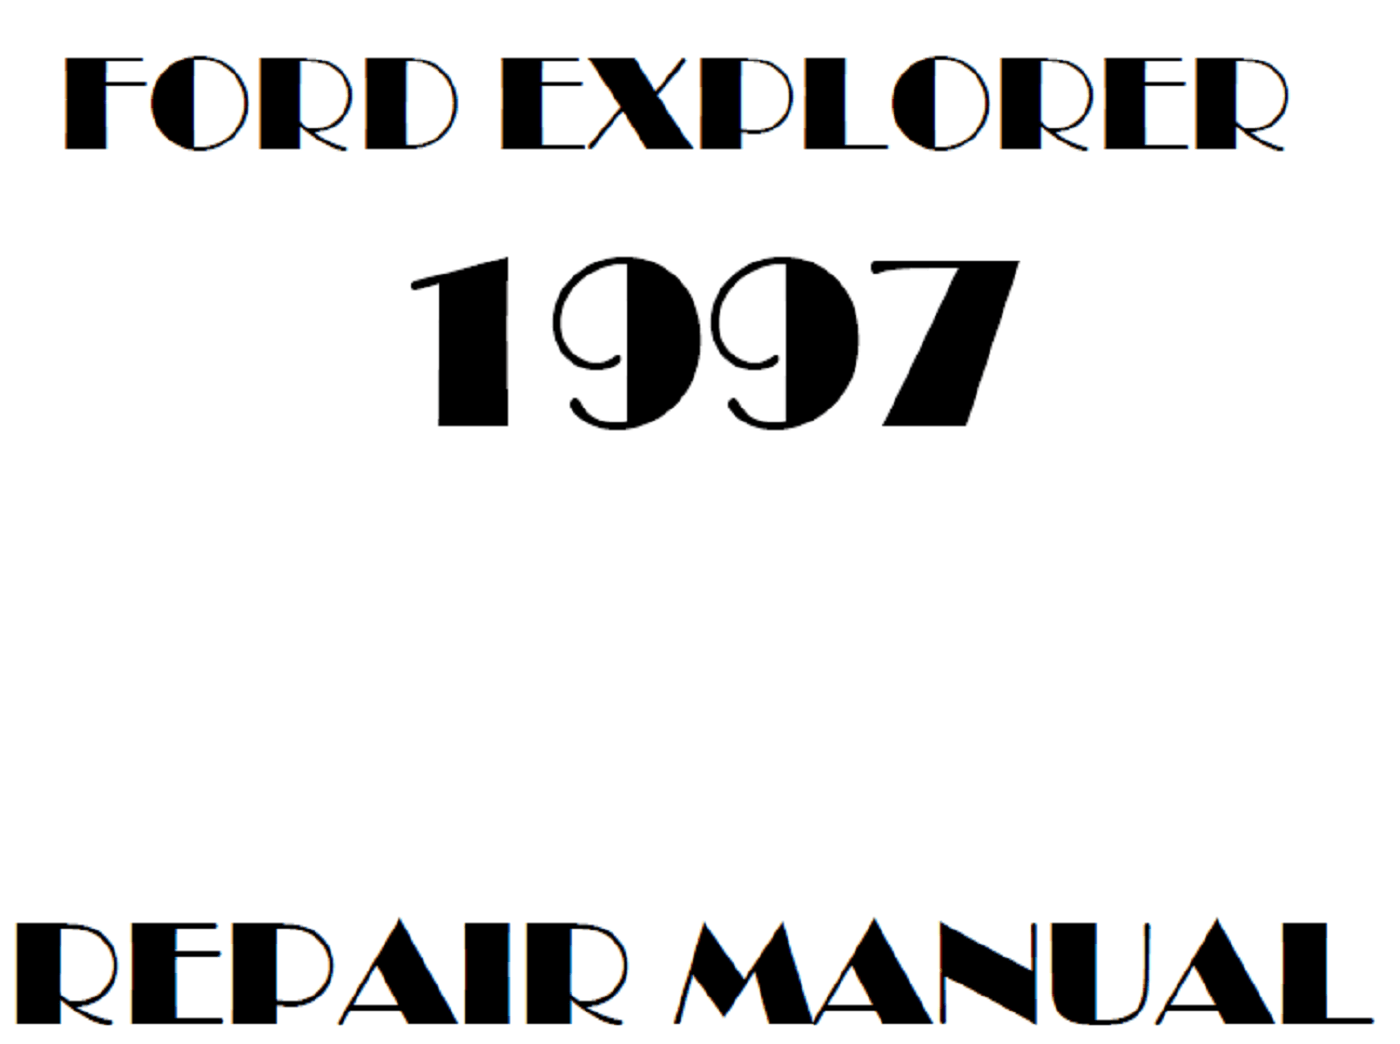 1997 Ford Explorer repair manual